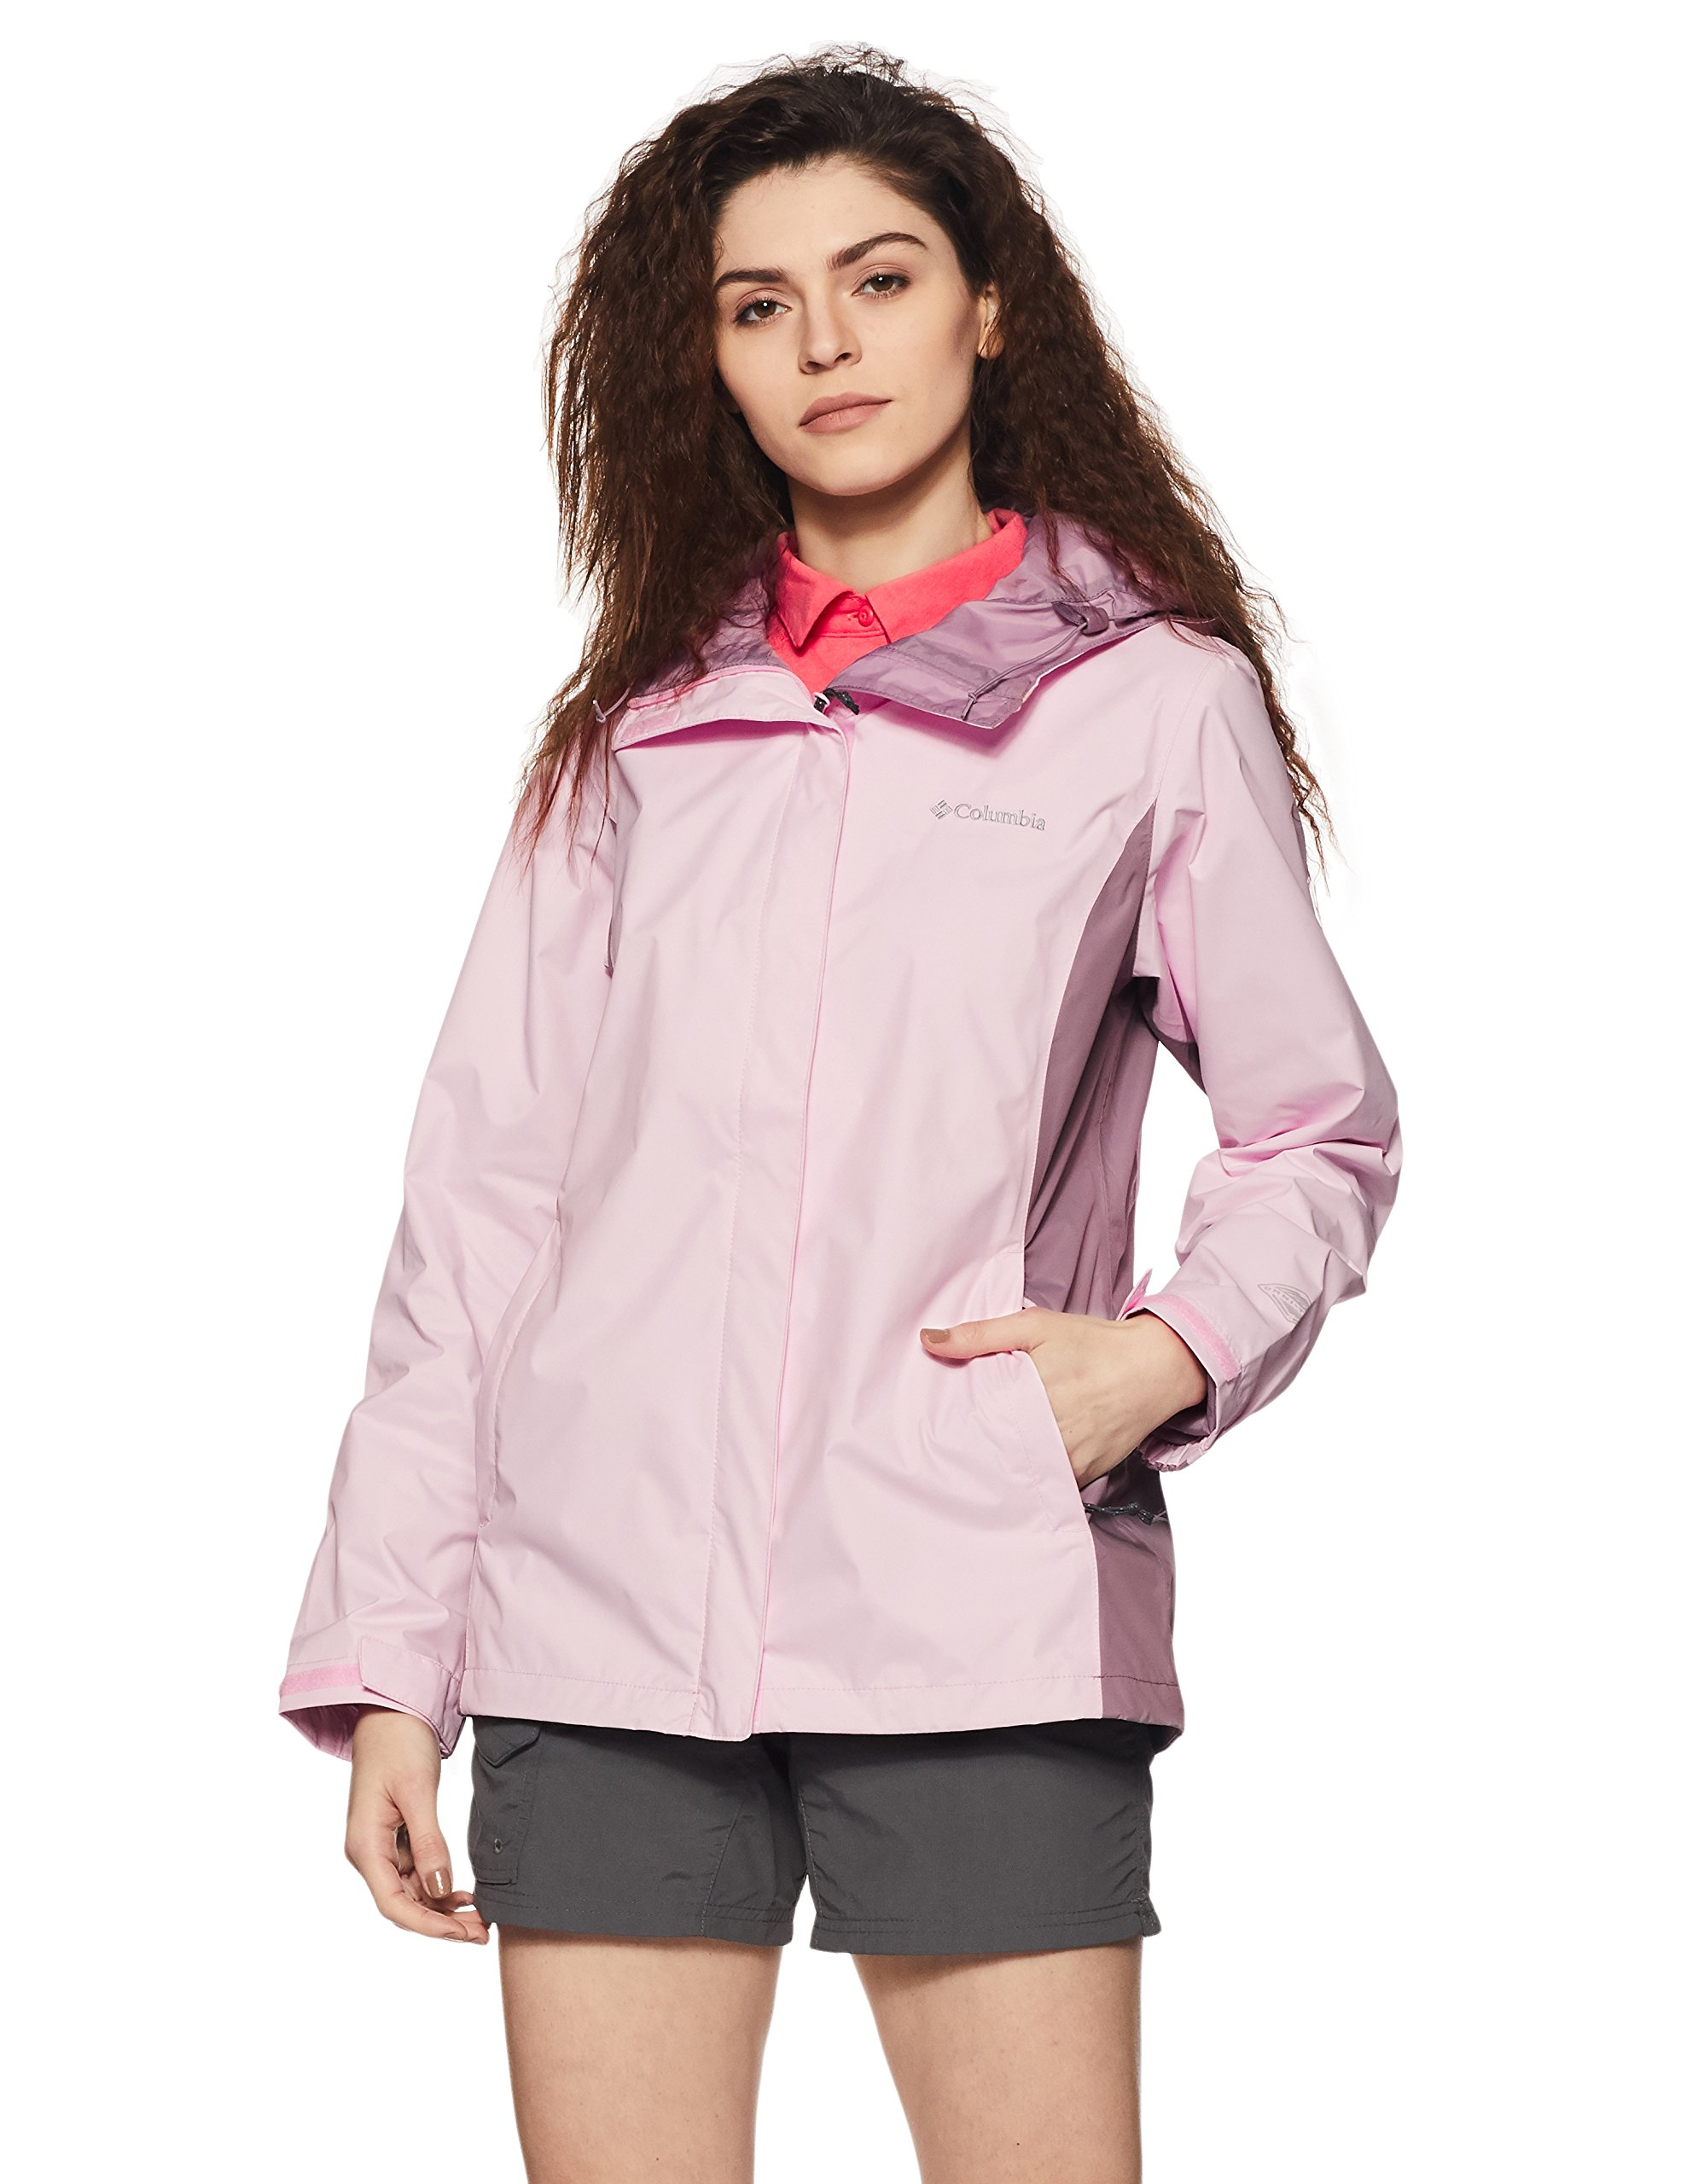 Columbia Women's Arcadia II Waterproof Breathable Jacket with Packable Hood, Whitened Pink, Small